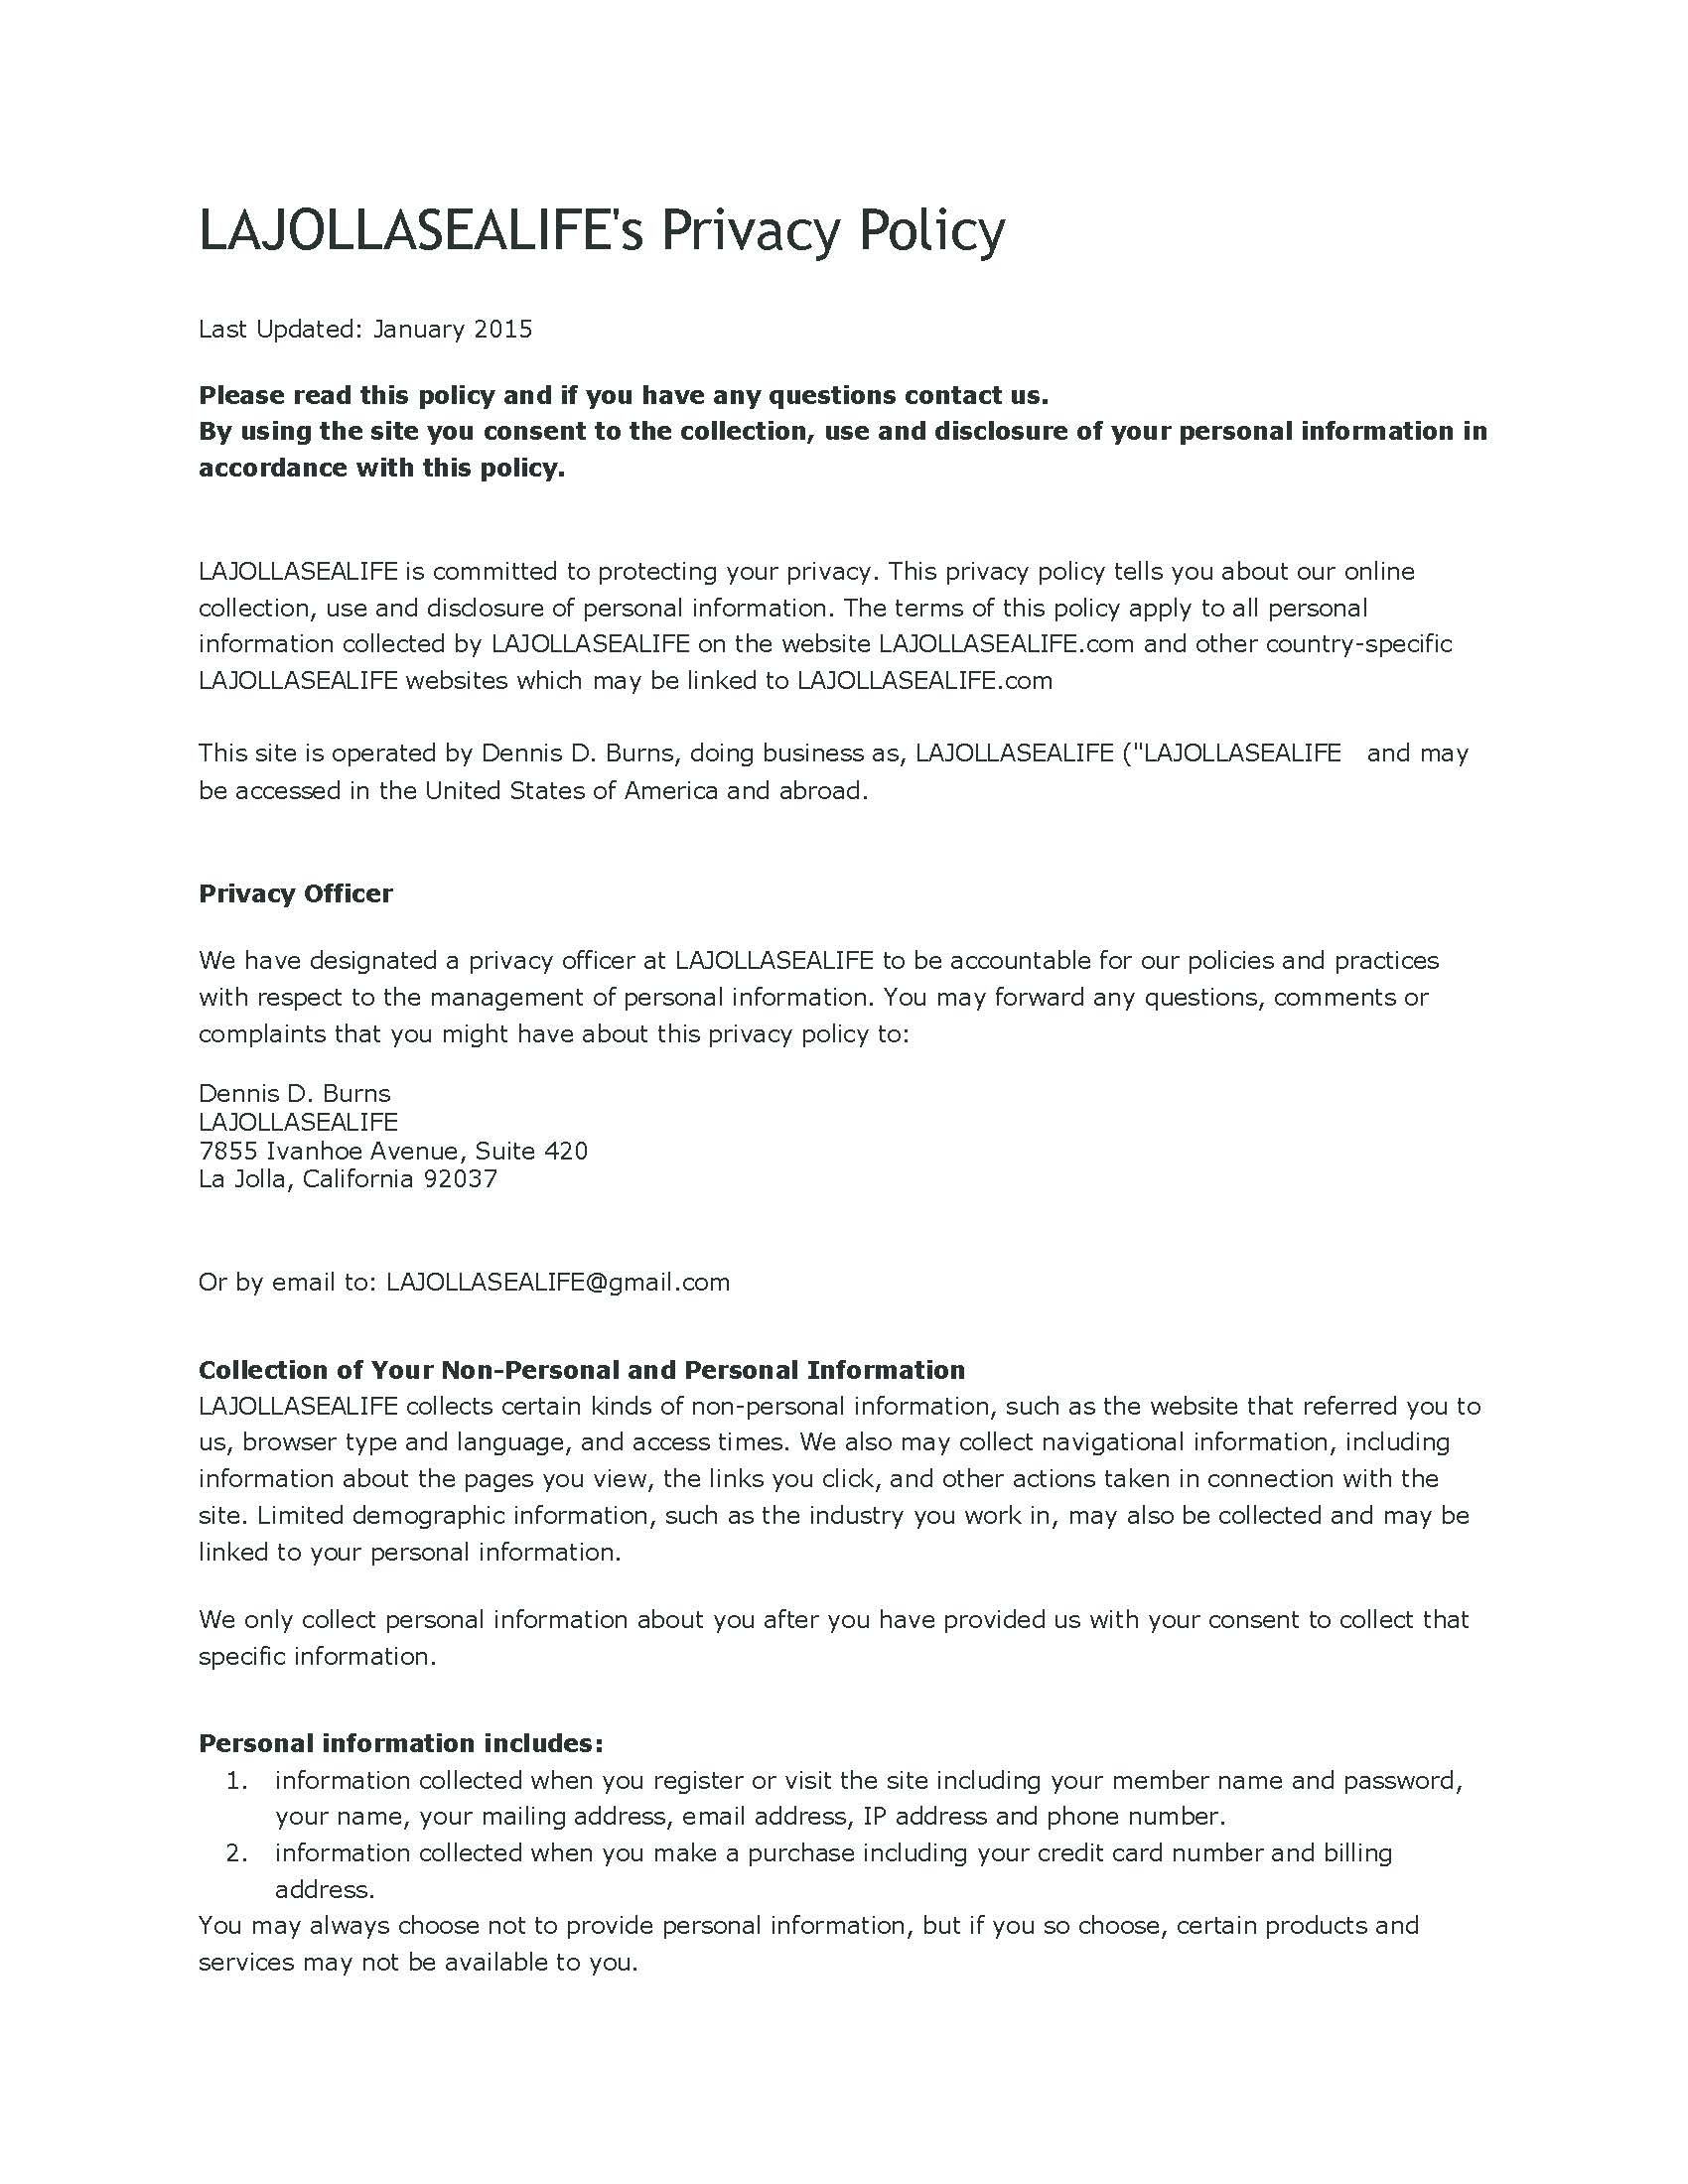 PRIVACY POLICY PAGE ONE_Page_1